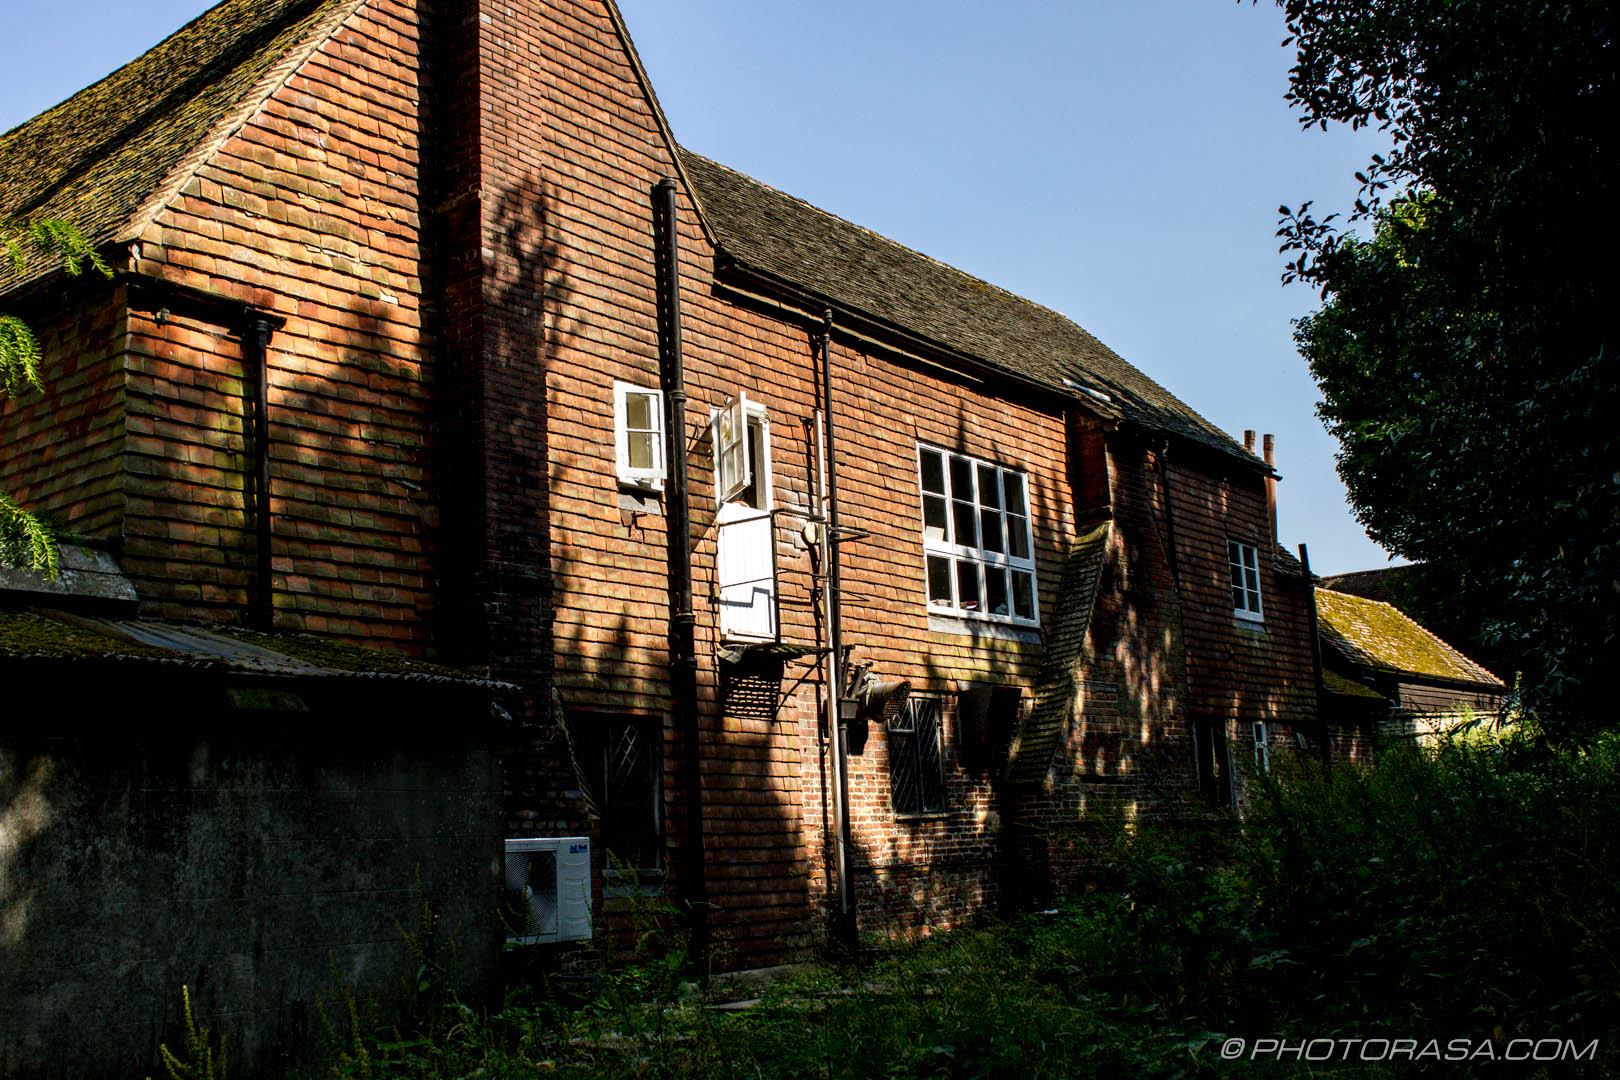 http://photorasa.com/chiddingstone-castle/side-of-castle-inn/